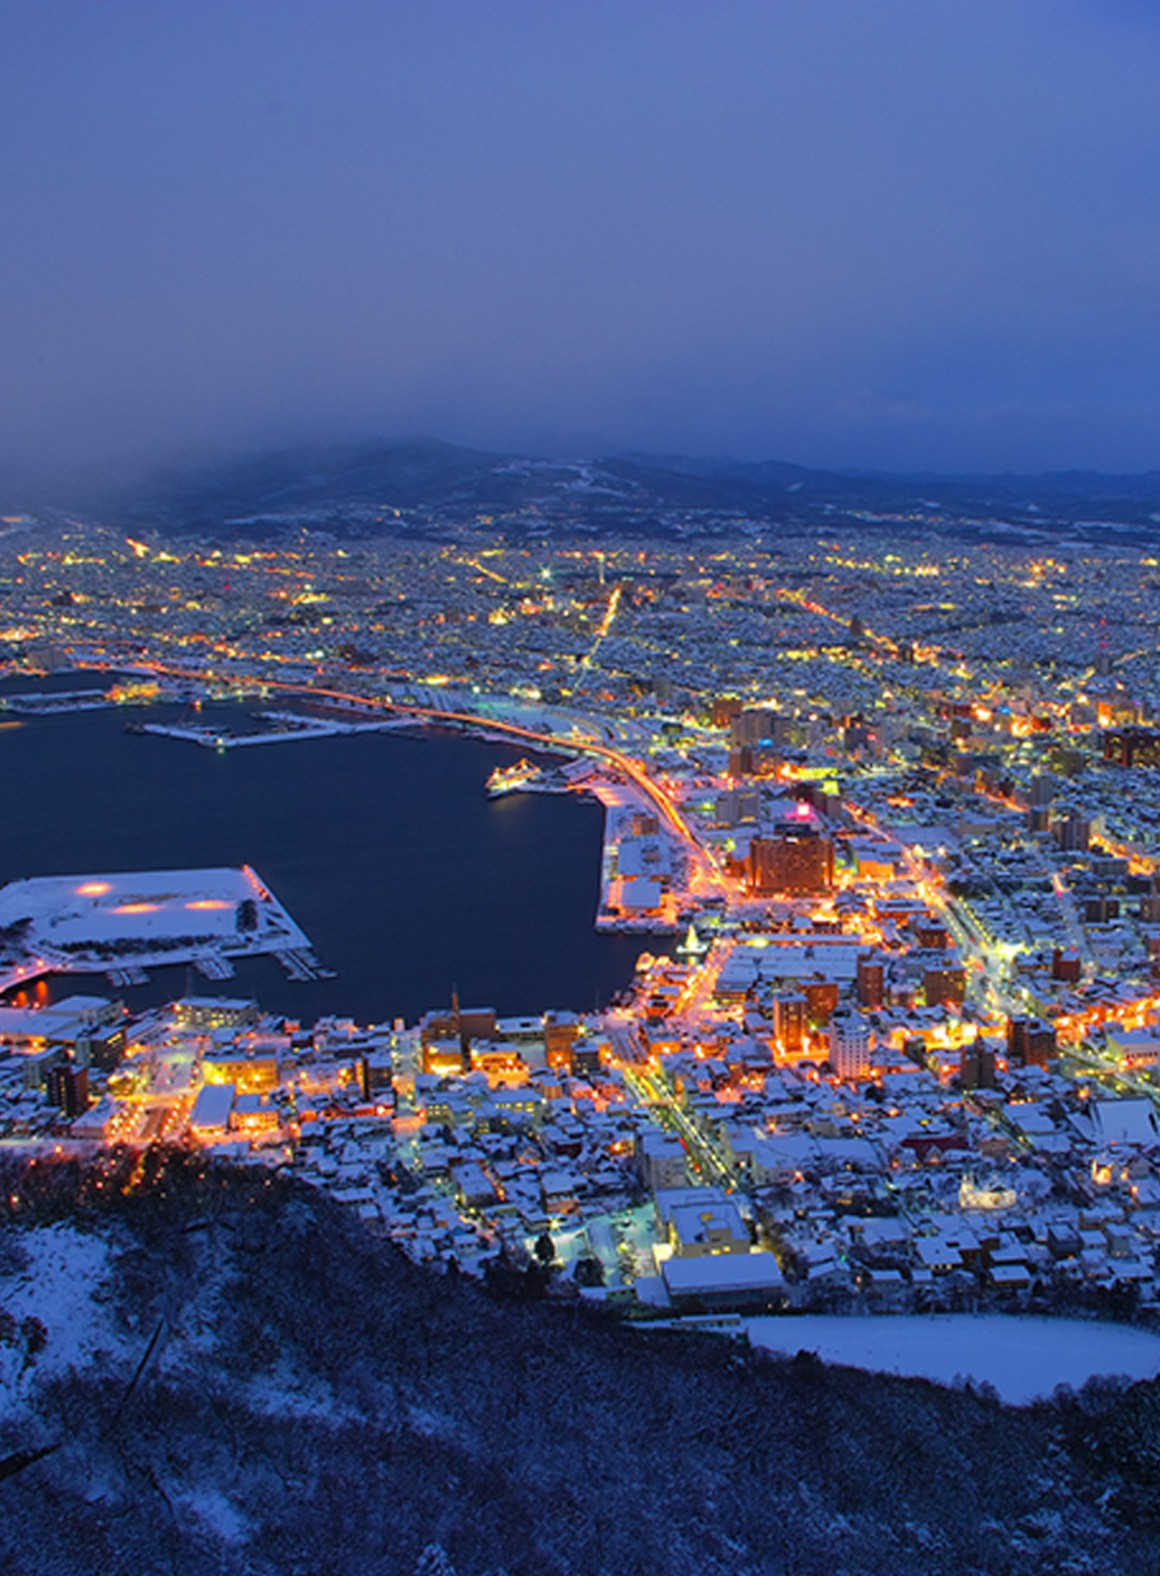 Completed in the morning! Easy Hakodate mountain hiking with sneakers